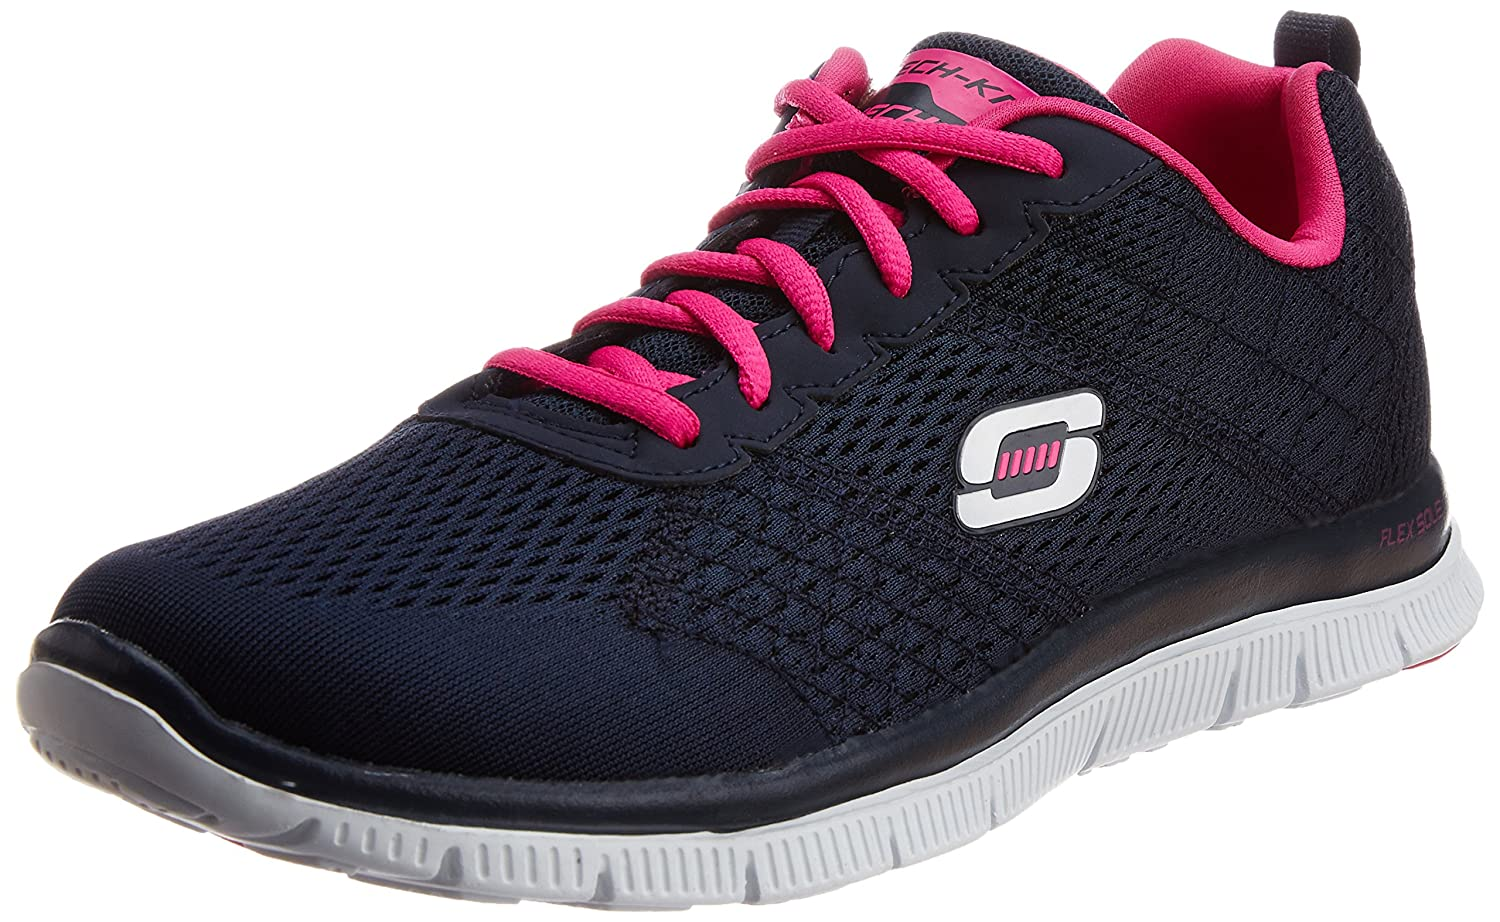 Skechers Flex Appeal Obvious Choice Damen Sneakers  35 EU|Blau (Nvpk)